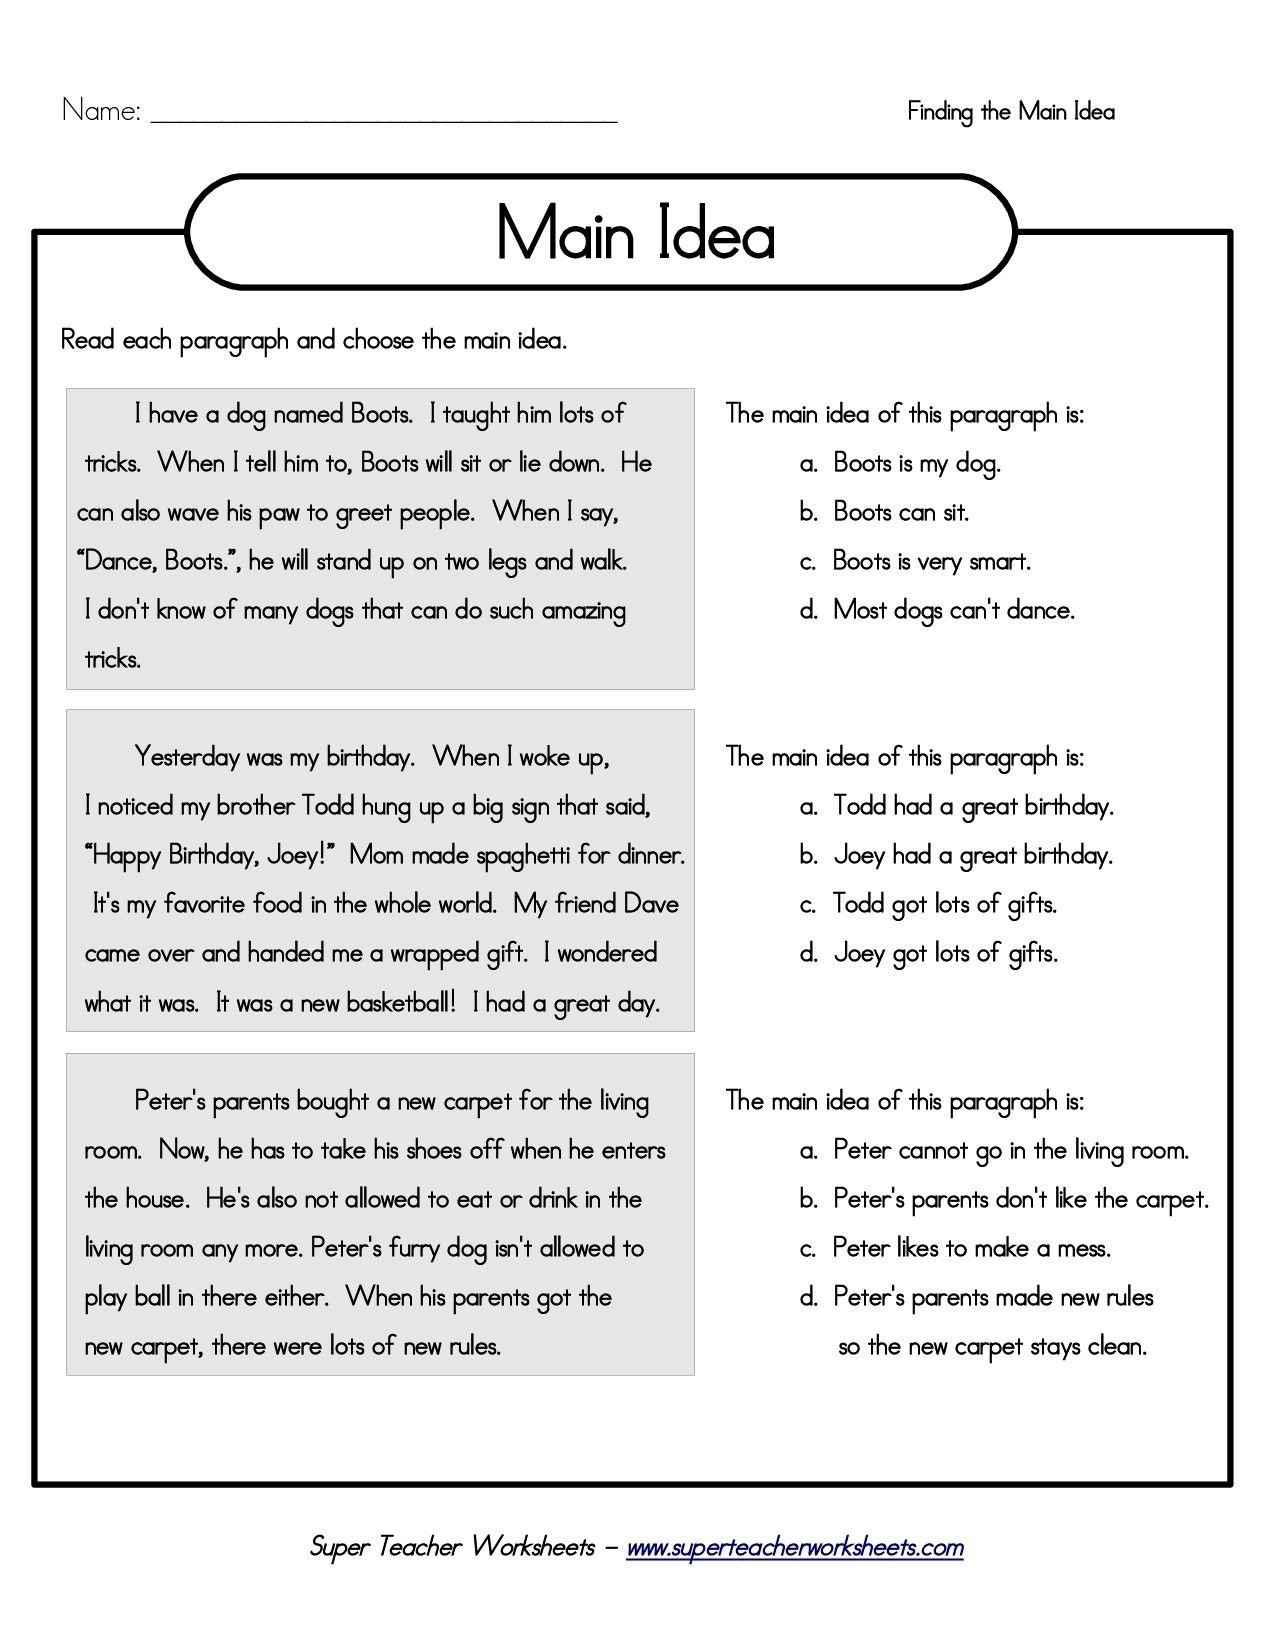 10 Stylish Main Idea Worksheets For 2Nd Grade printable 5th grade main idea worksheets main idea and details 28 2021